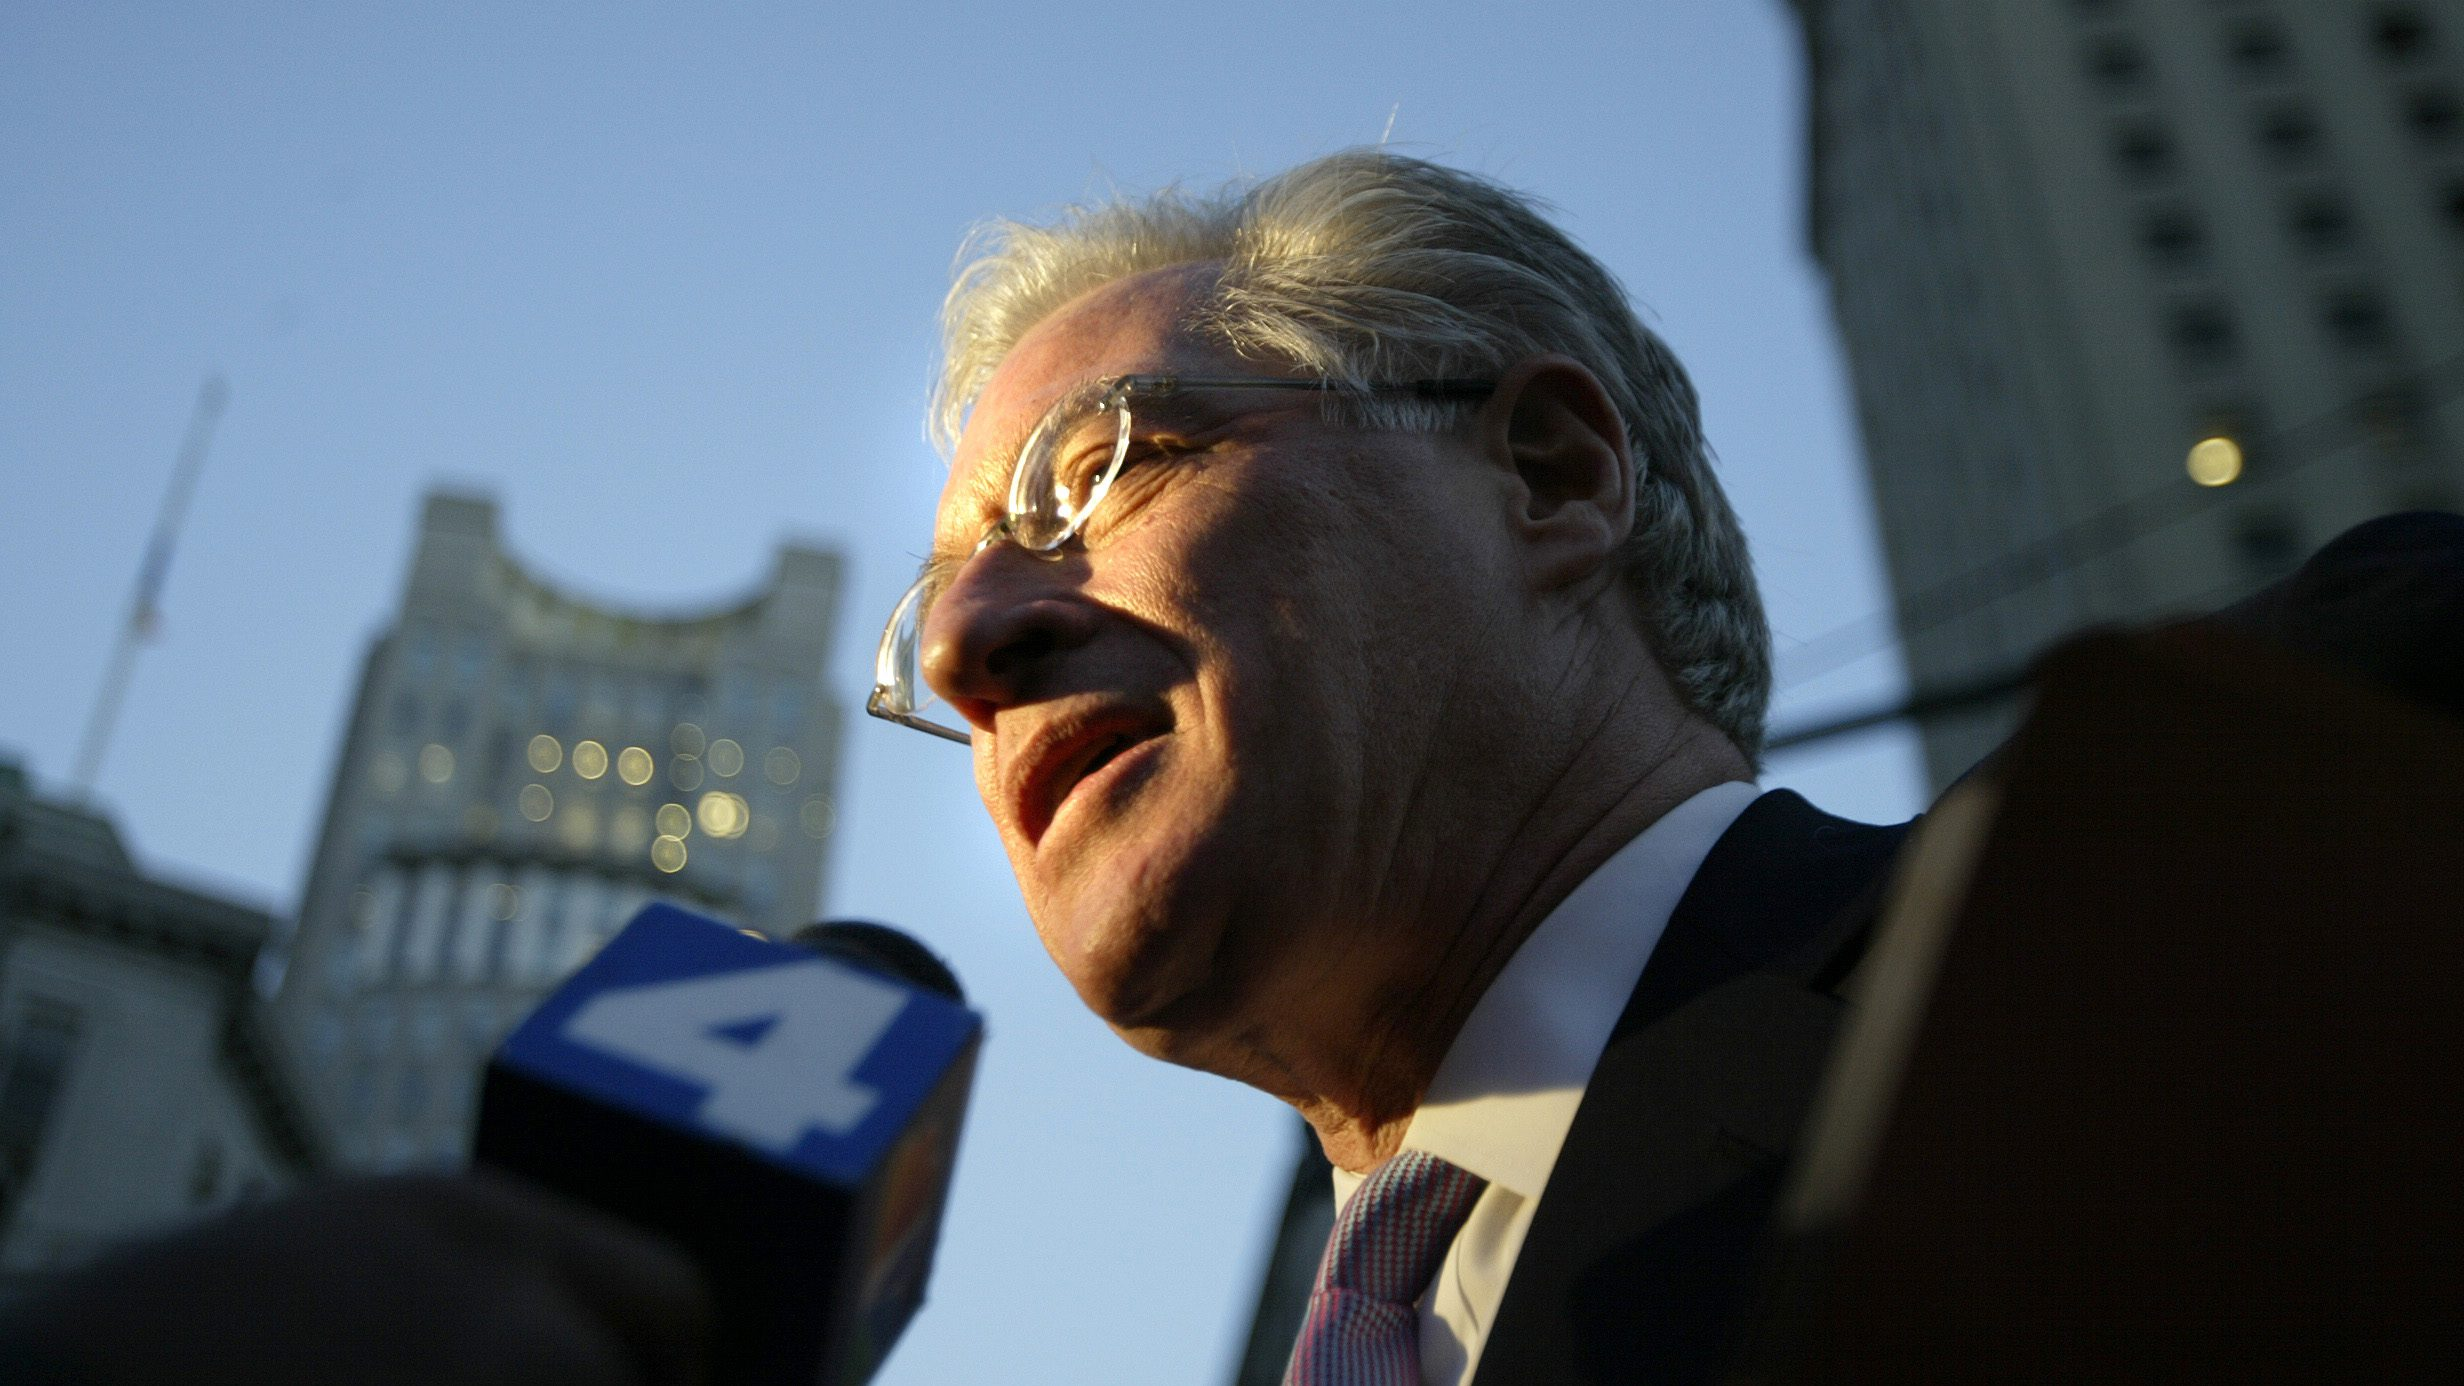 Defense attorney Marc Kasowitz speaks to reporters after a jury found the New York and New Jersey Port Authority negligent in the 1993 bombing of the World Trade Center, in New York October 26, 2005. The jury found port authorities negligent for failing to prevent the 1993 truck bombing at the World Trade Center, possibly triggering a raft of new lawsuits and millions of dollars in damages. Islamist militants exploded the truck bomb in an underground parking garage of the twin towers on Feb. 26, 1993, killing six people and wounding more than 1,000. REUTERS/Keith Bedford - RTR1A6VO